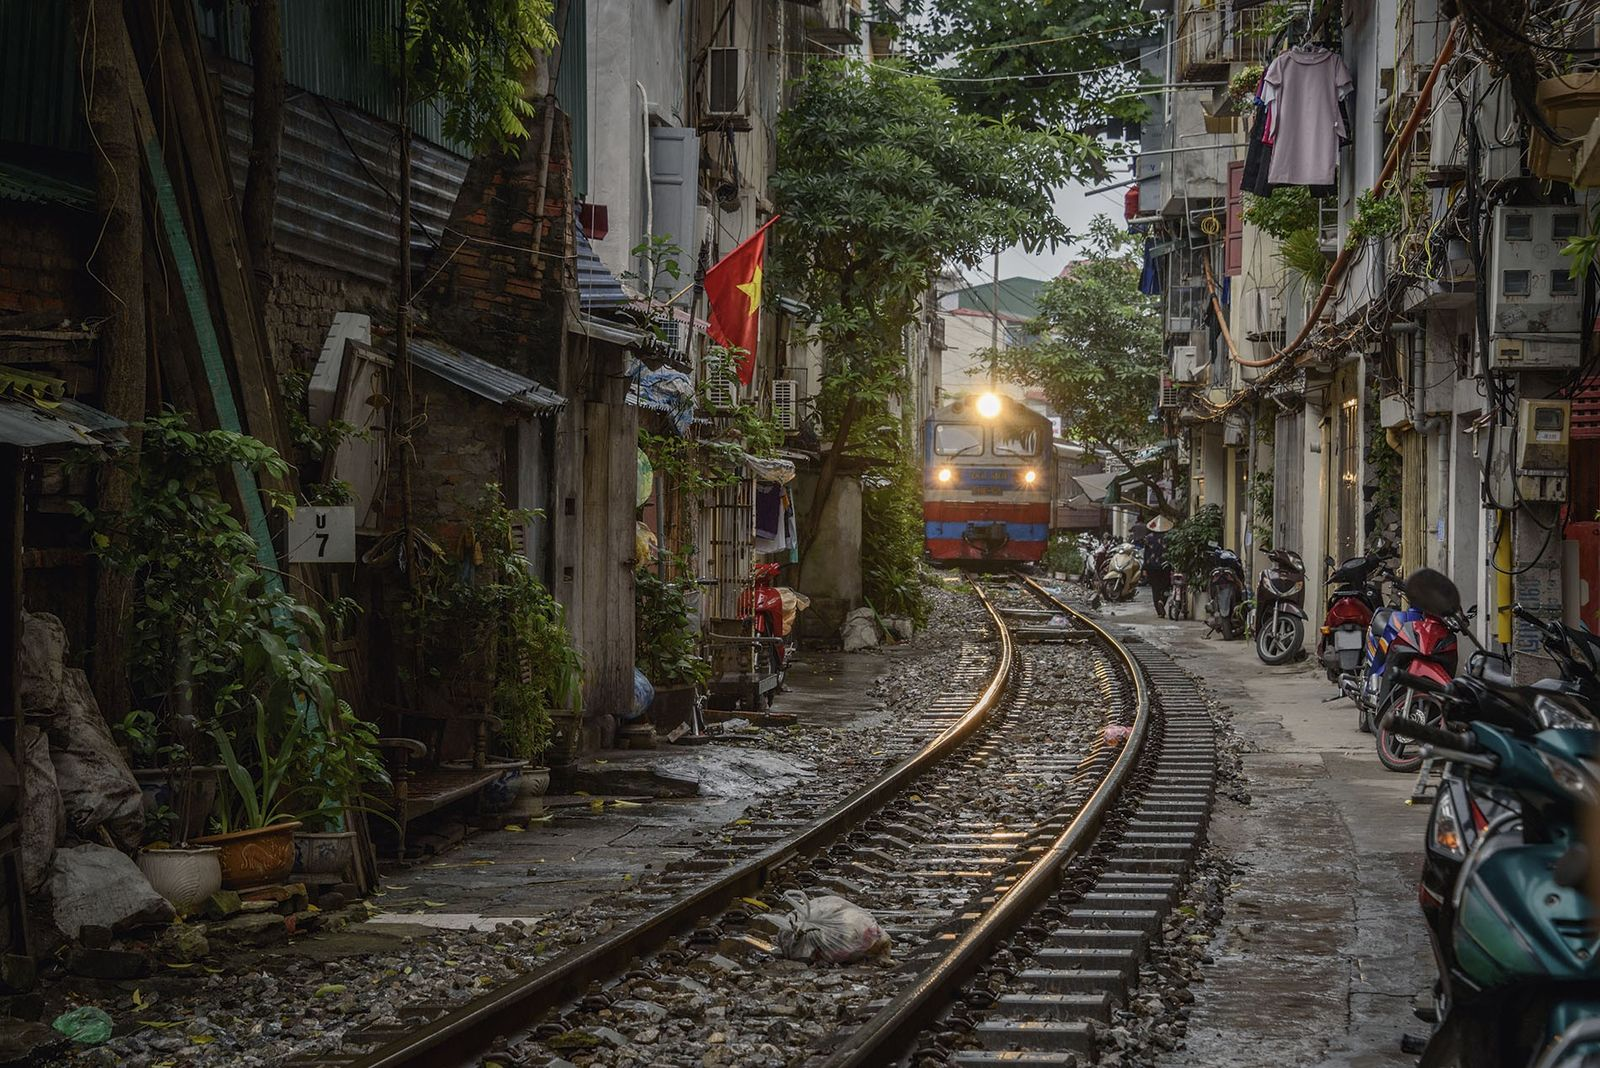 Vietnam: The Reunification Express